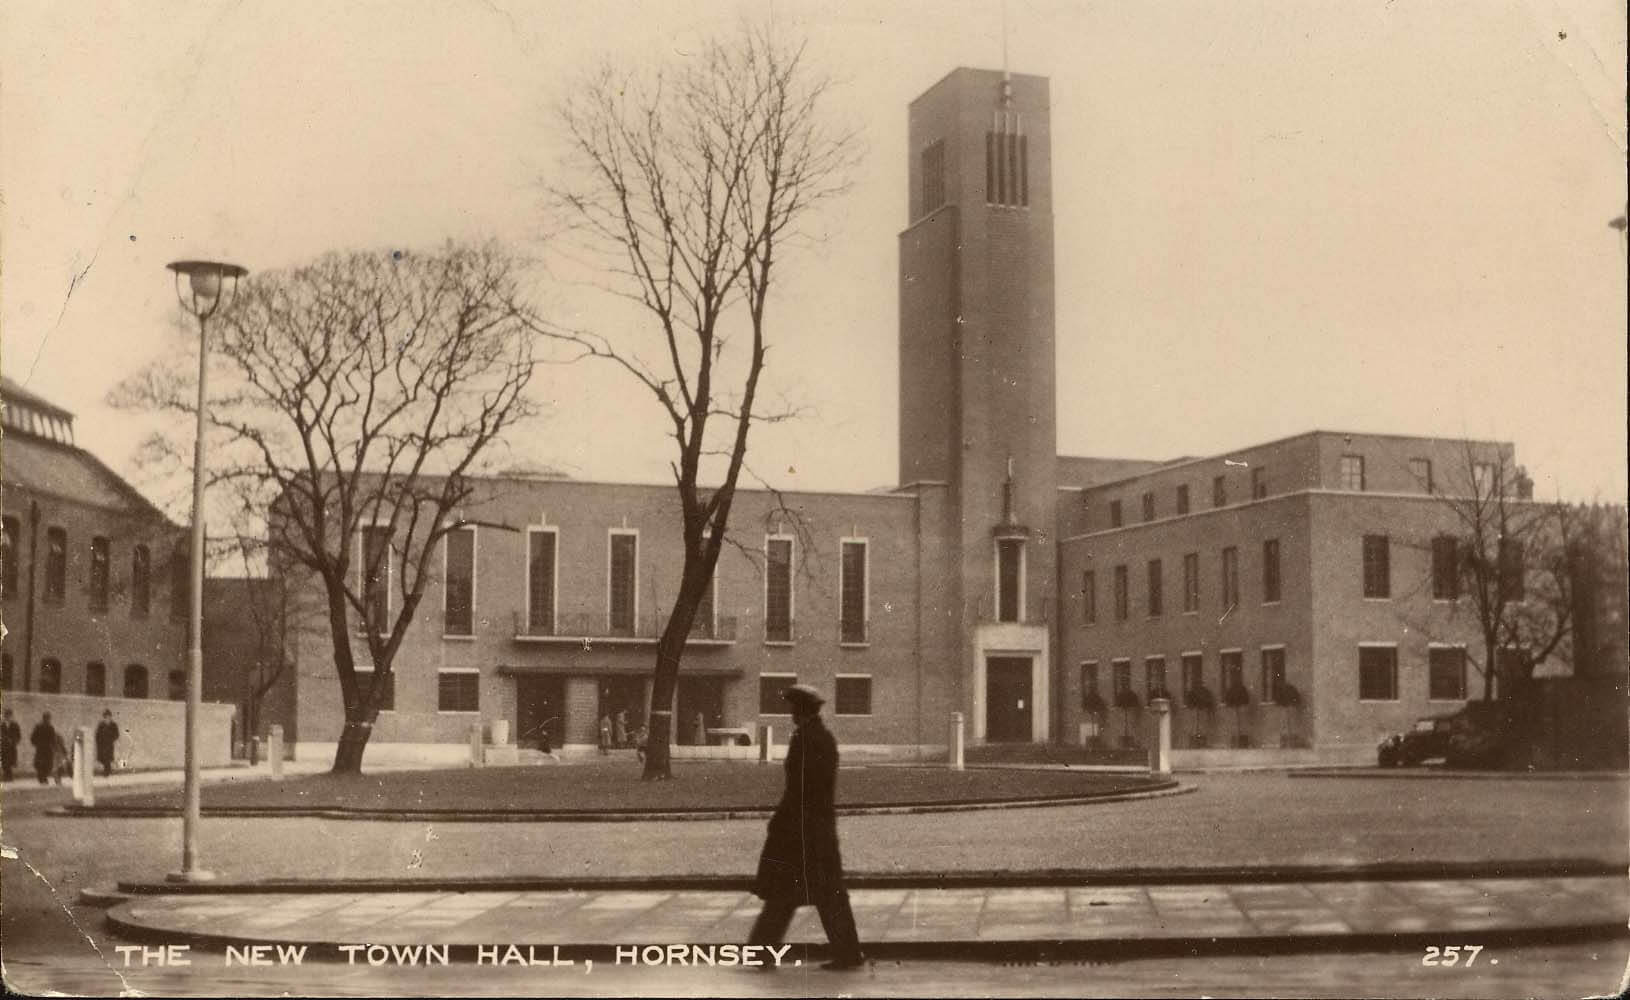 The New Town Hall Hornsey